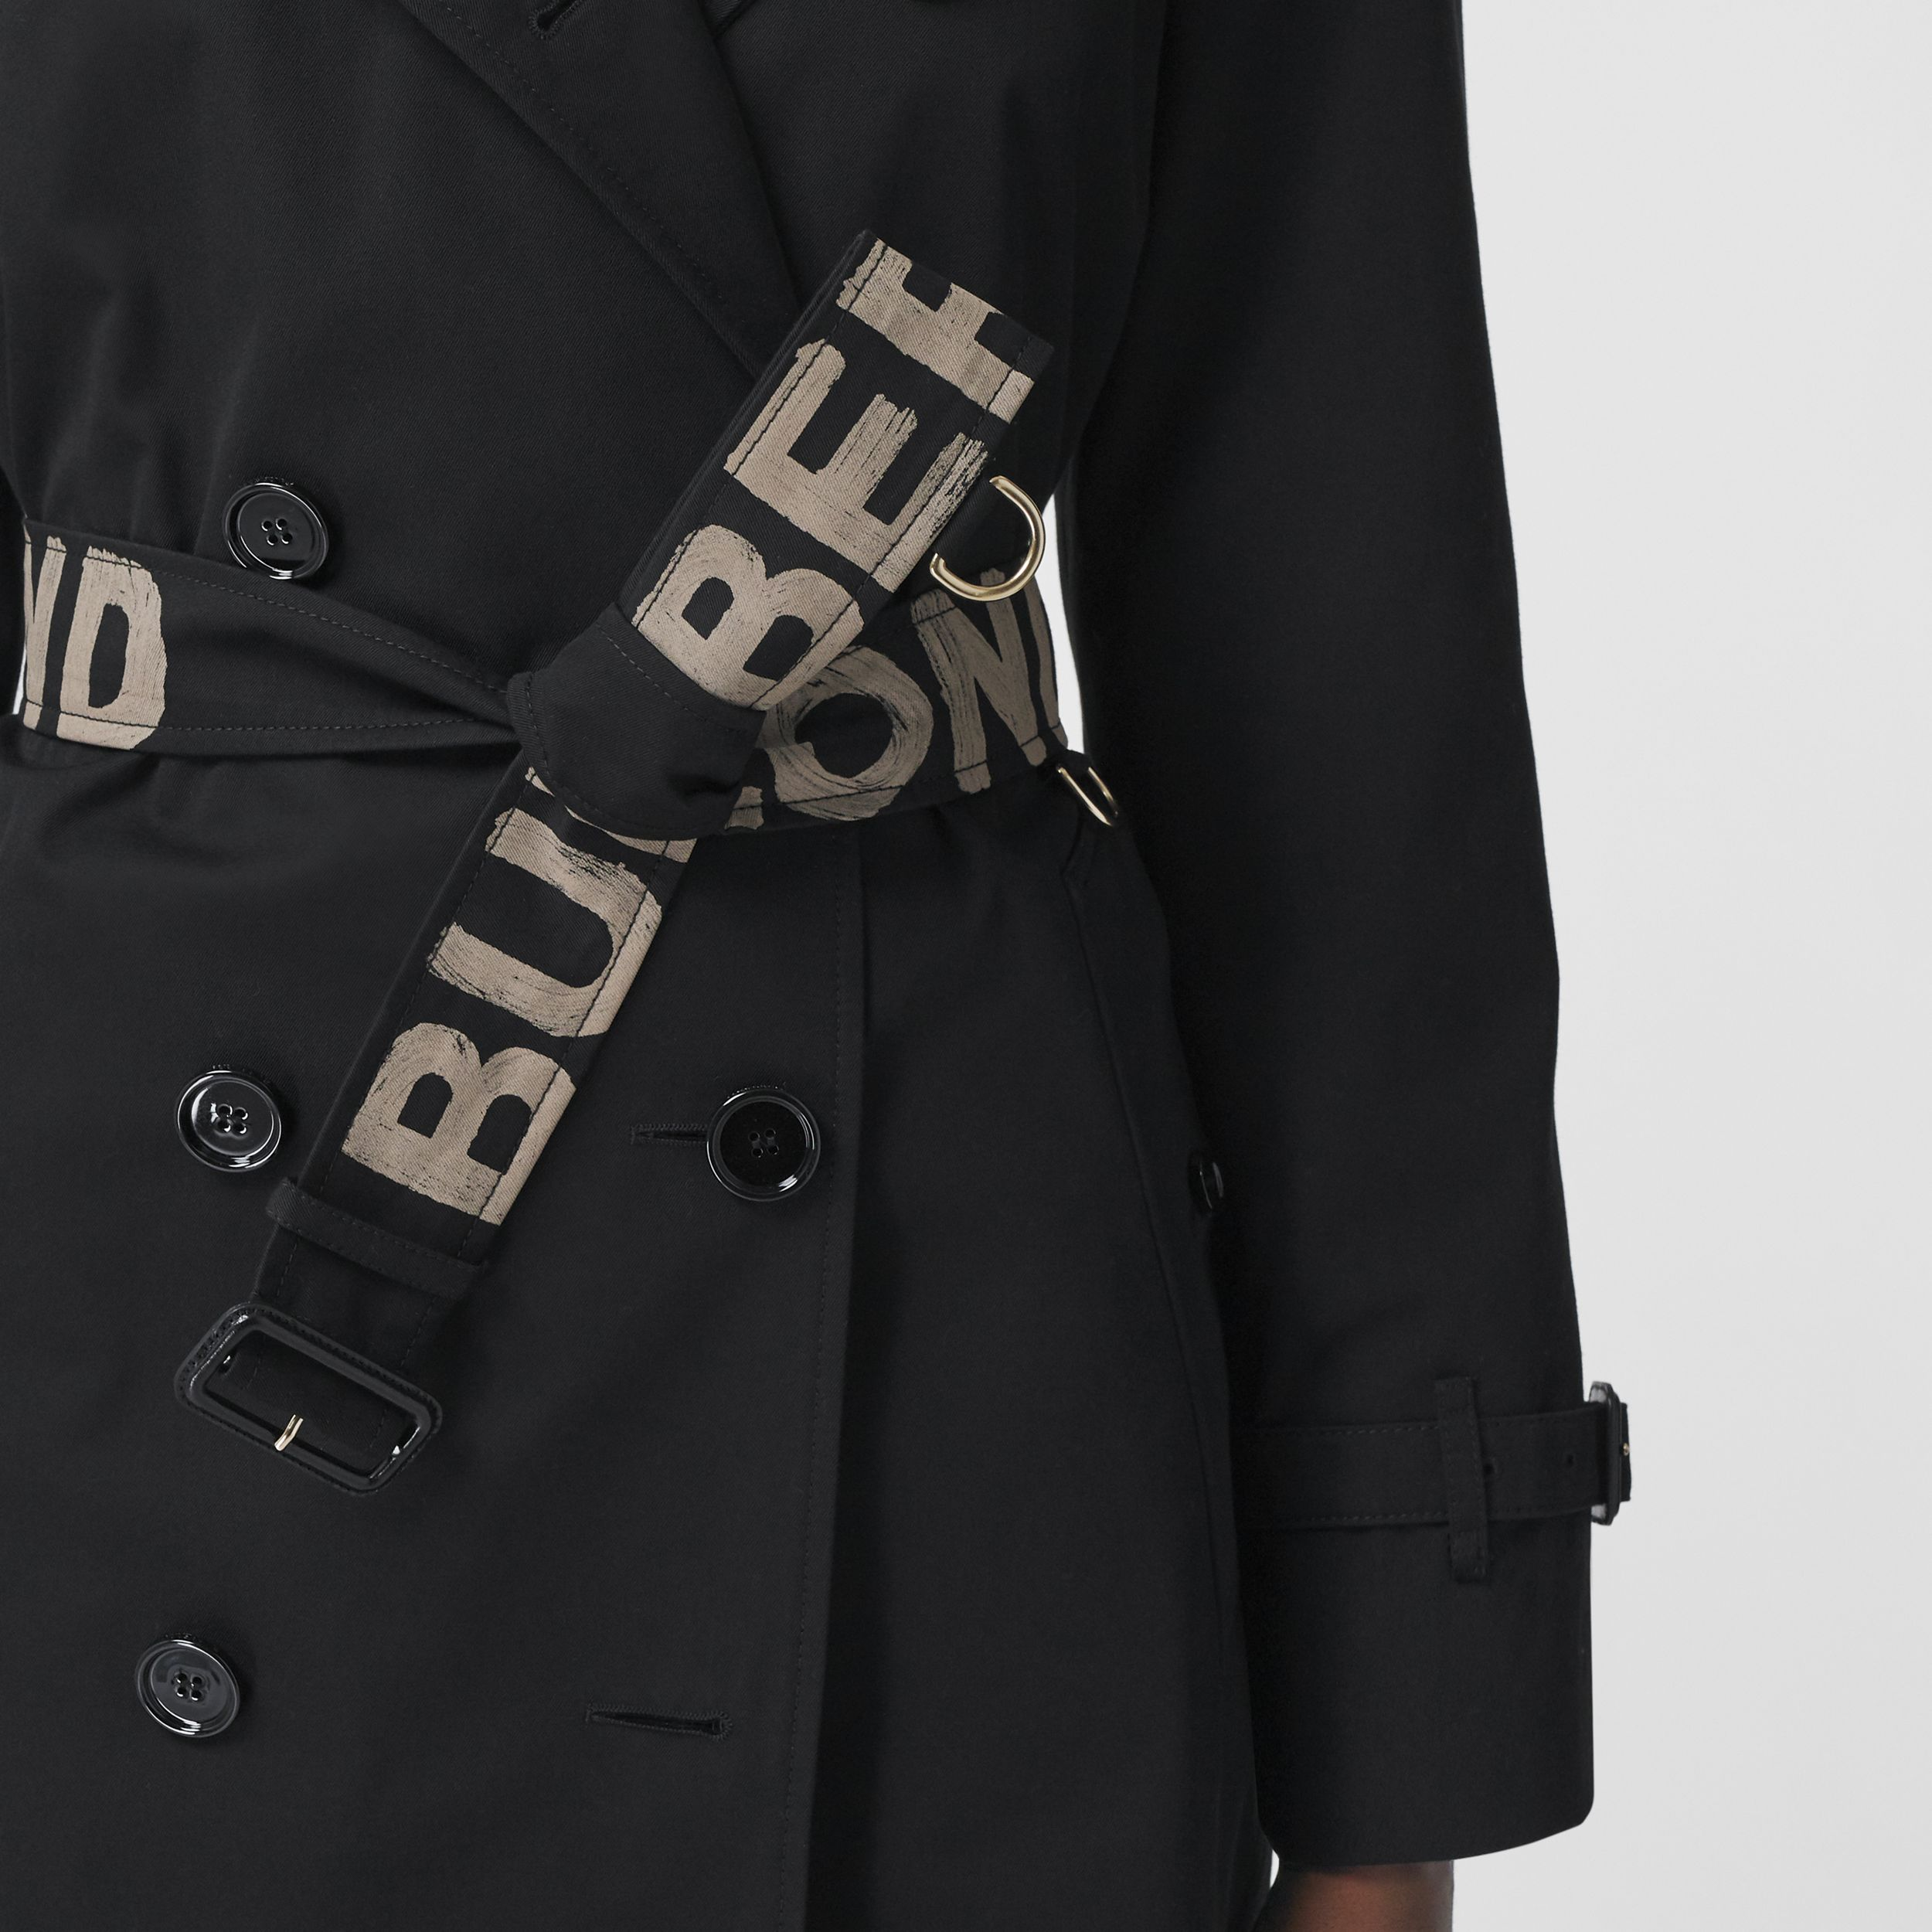 Logo Print Cotton Gabardine Trench Coat in Black - Women | Burberry - 4